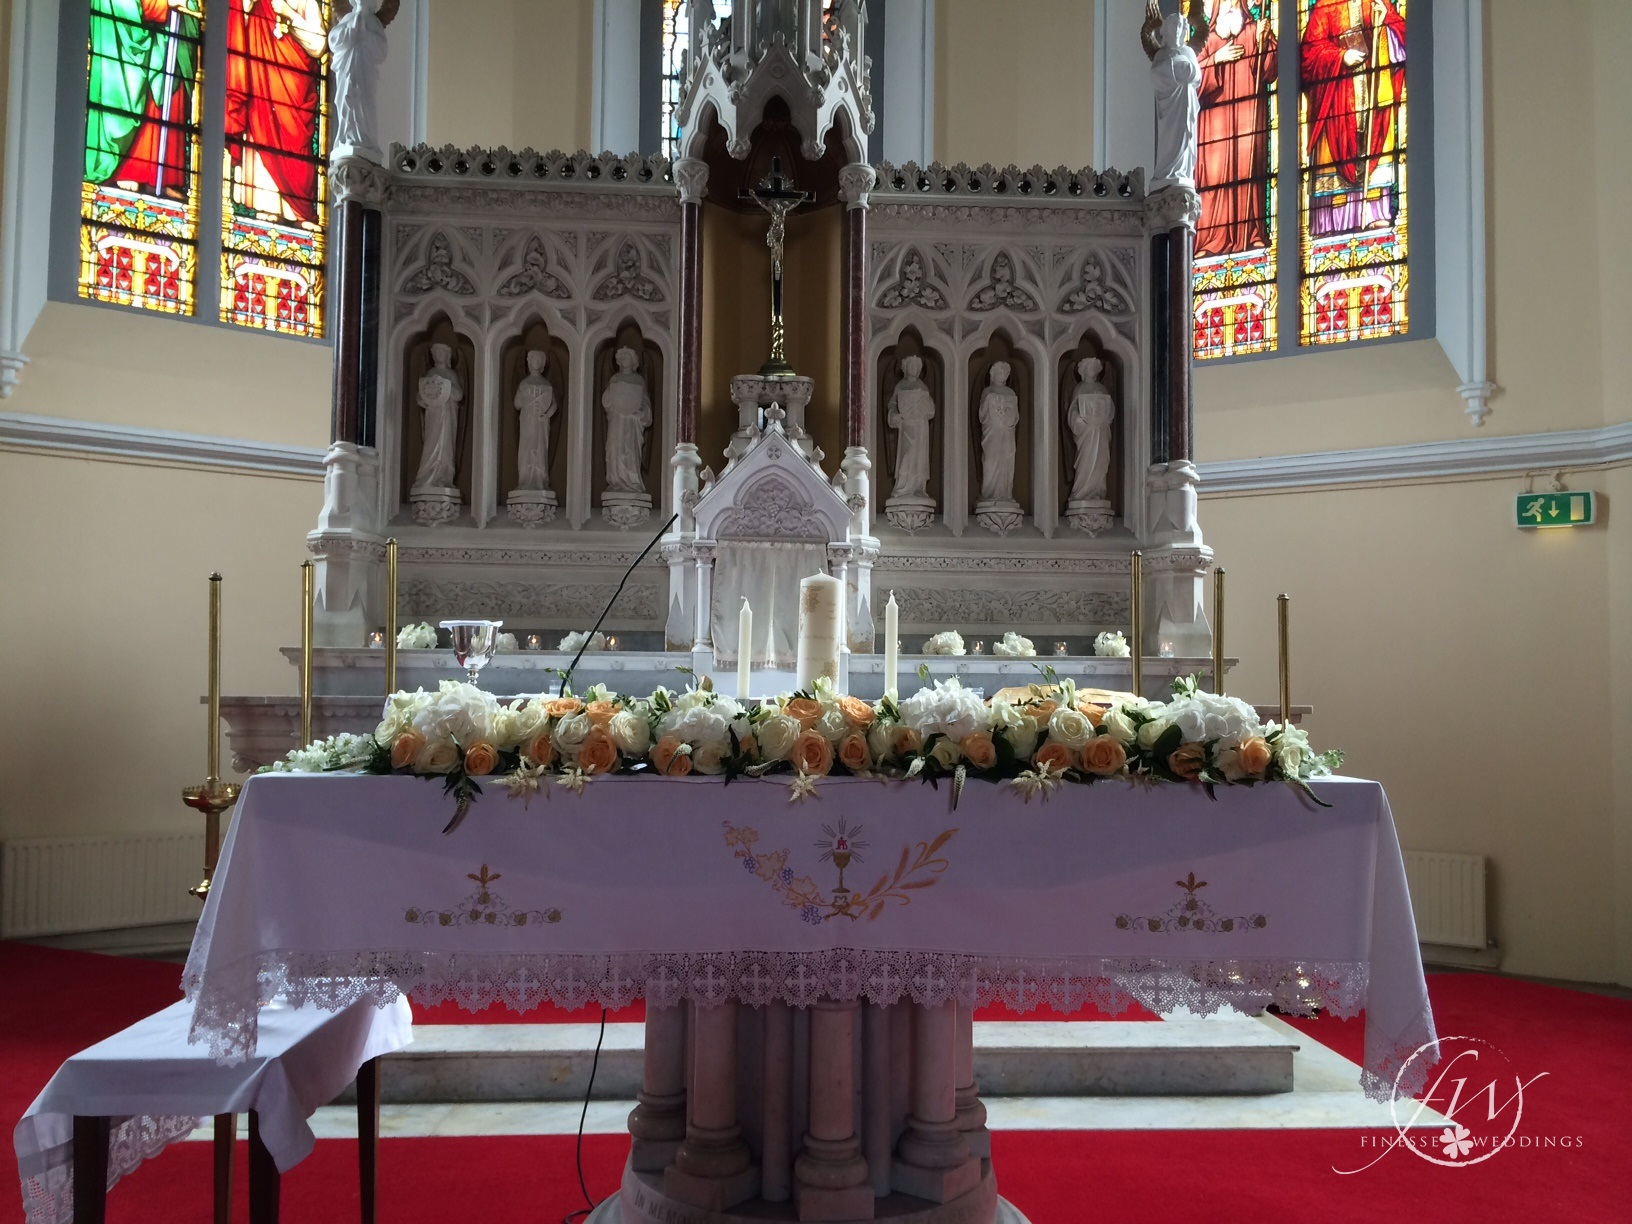 Monasterevin Church alter arrangement